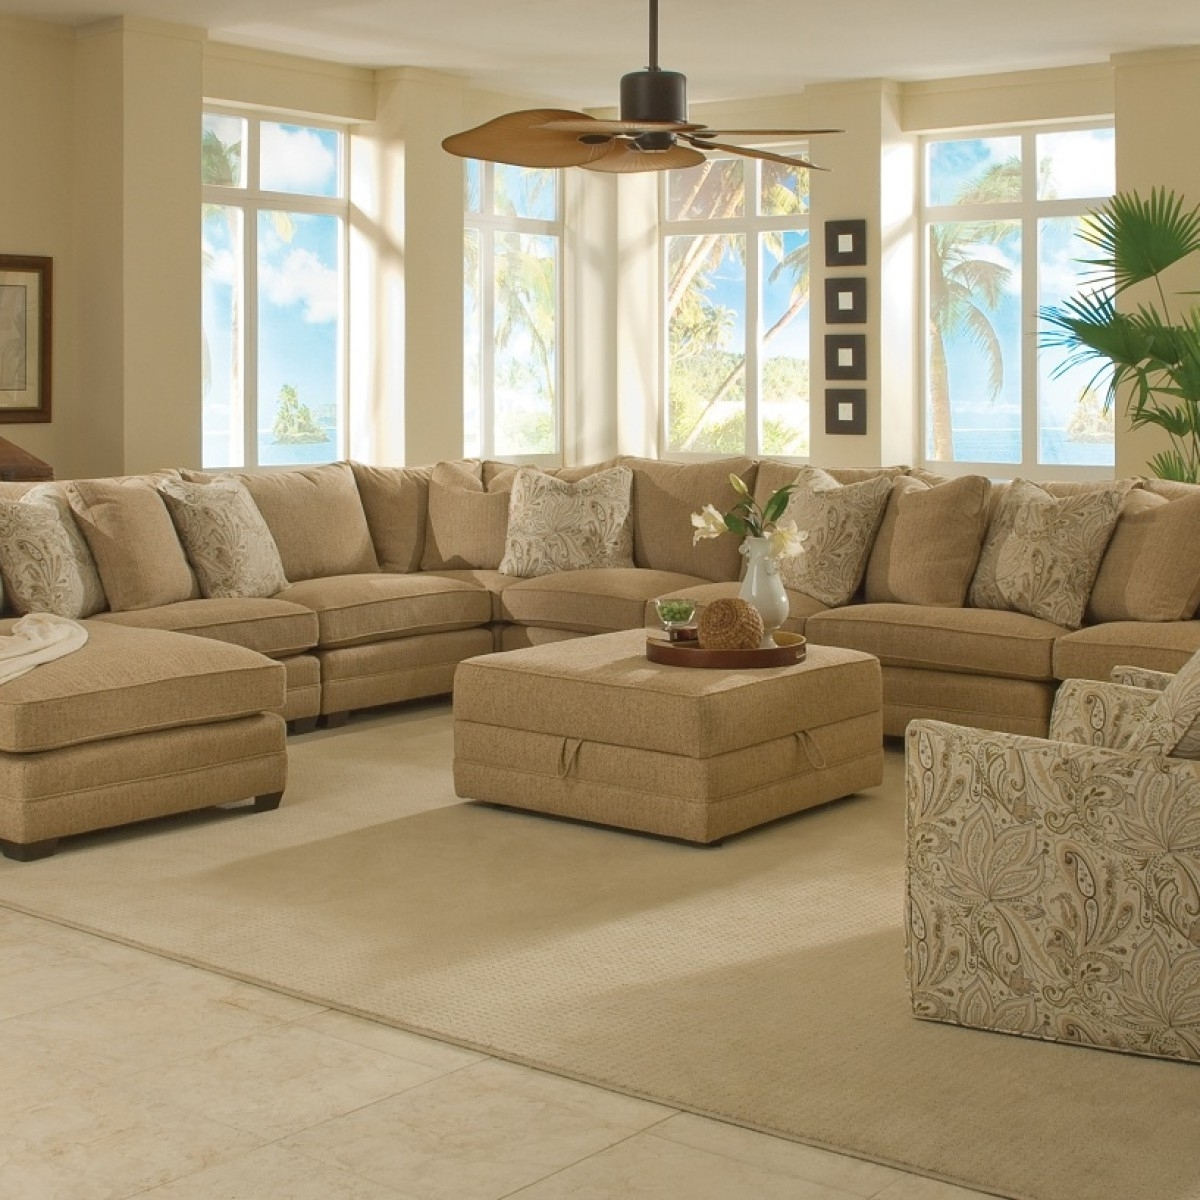 Most Popular Factors To Consider Before Buying An Extra Large Sectional Sofa In Large Sectional Sofas (View 7 of 15)